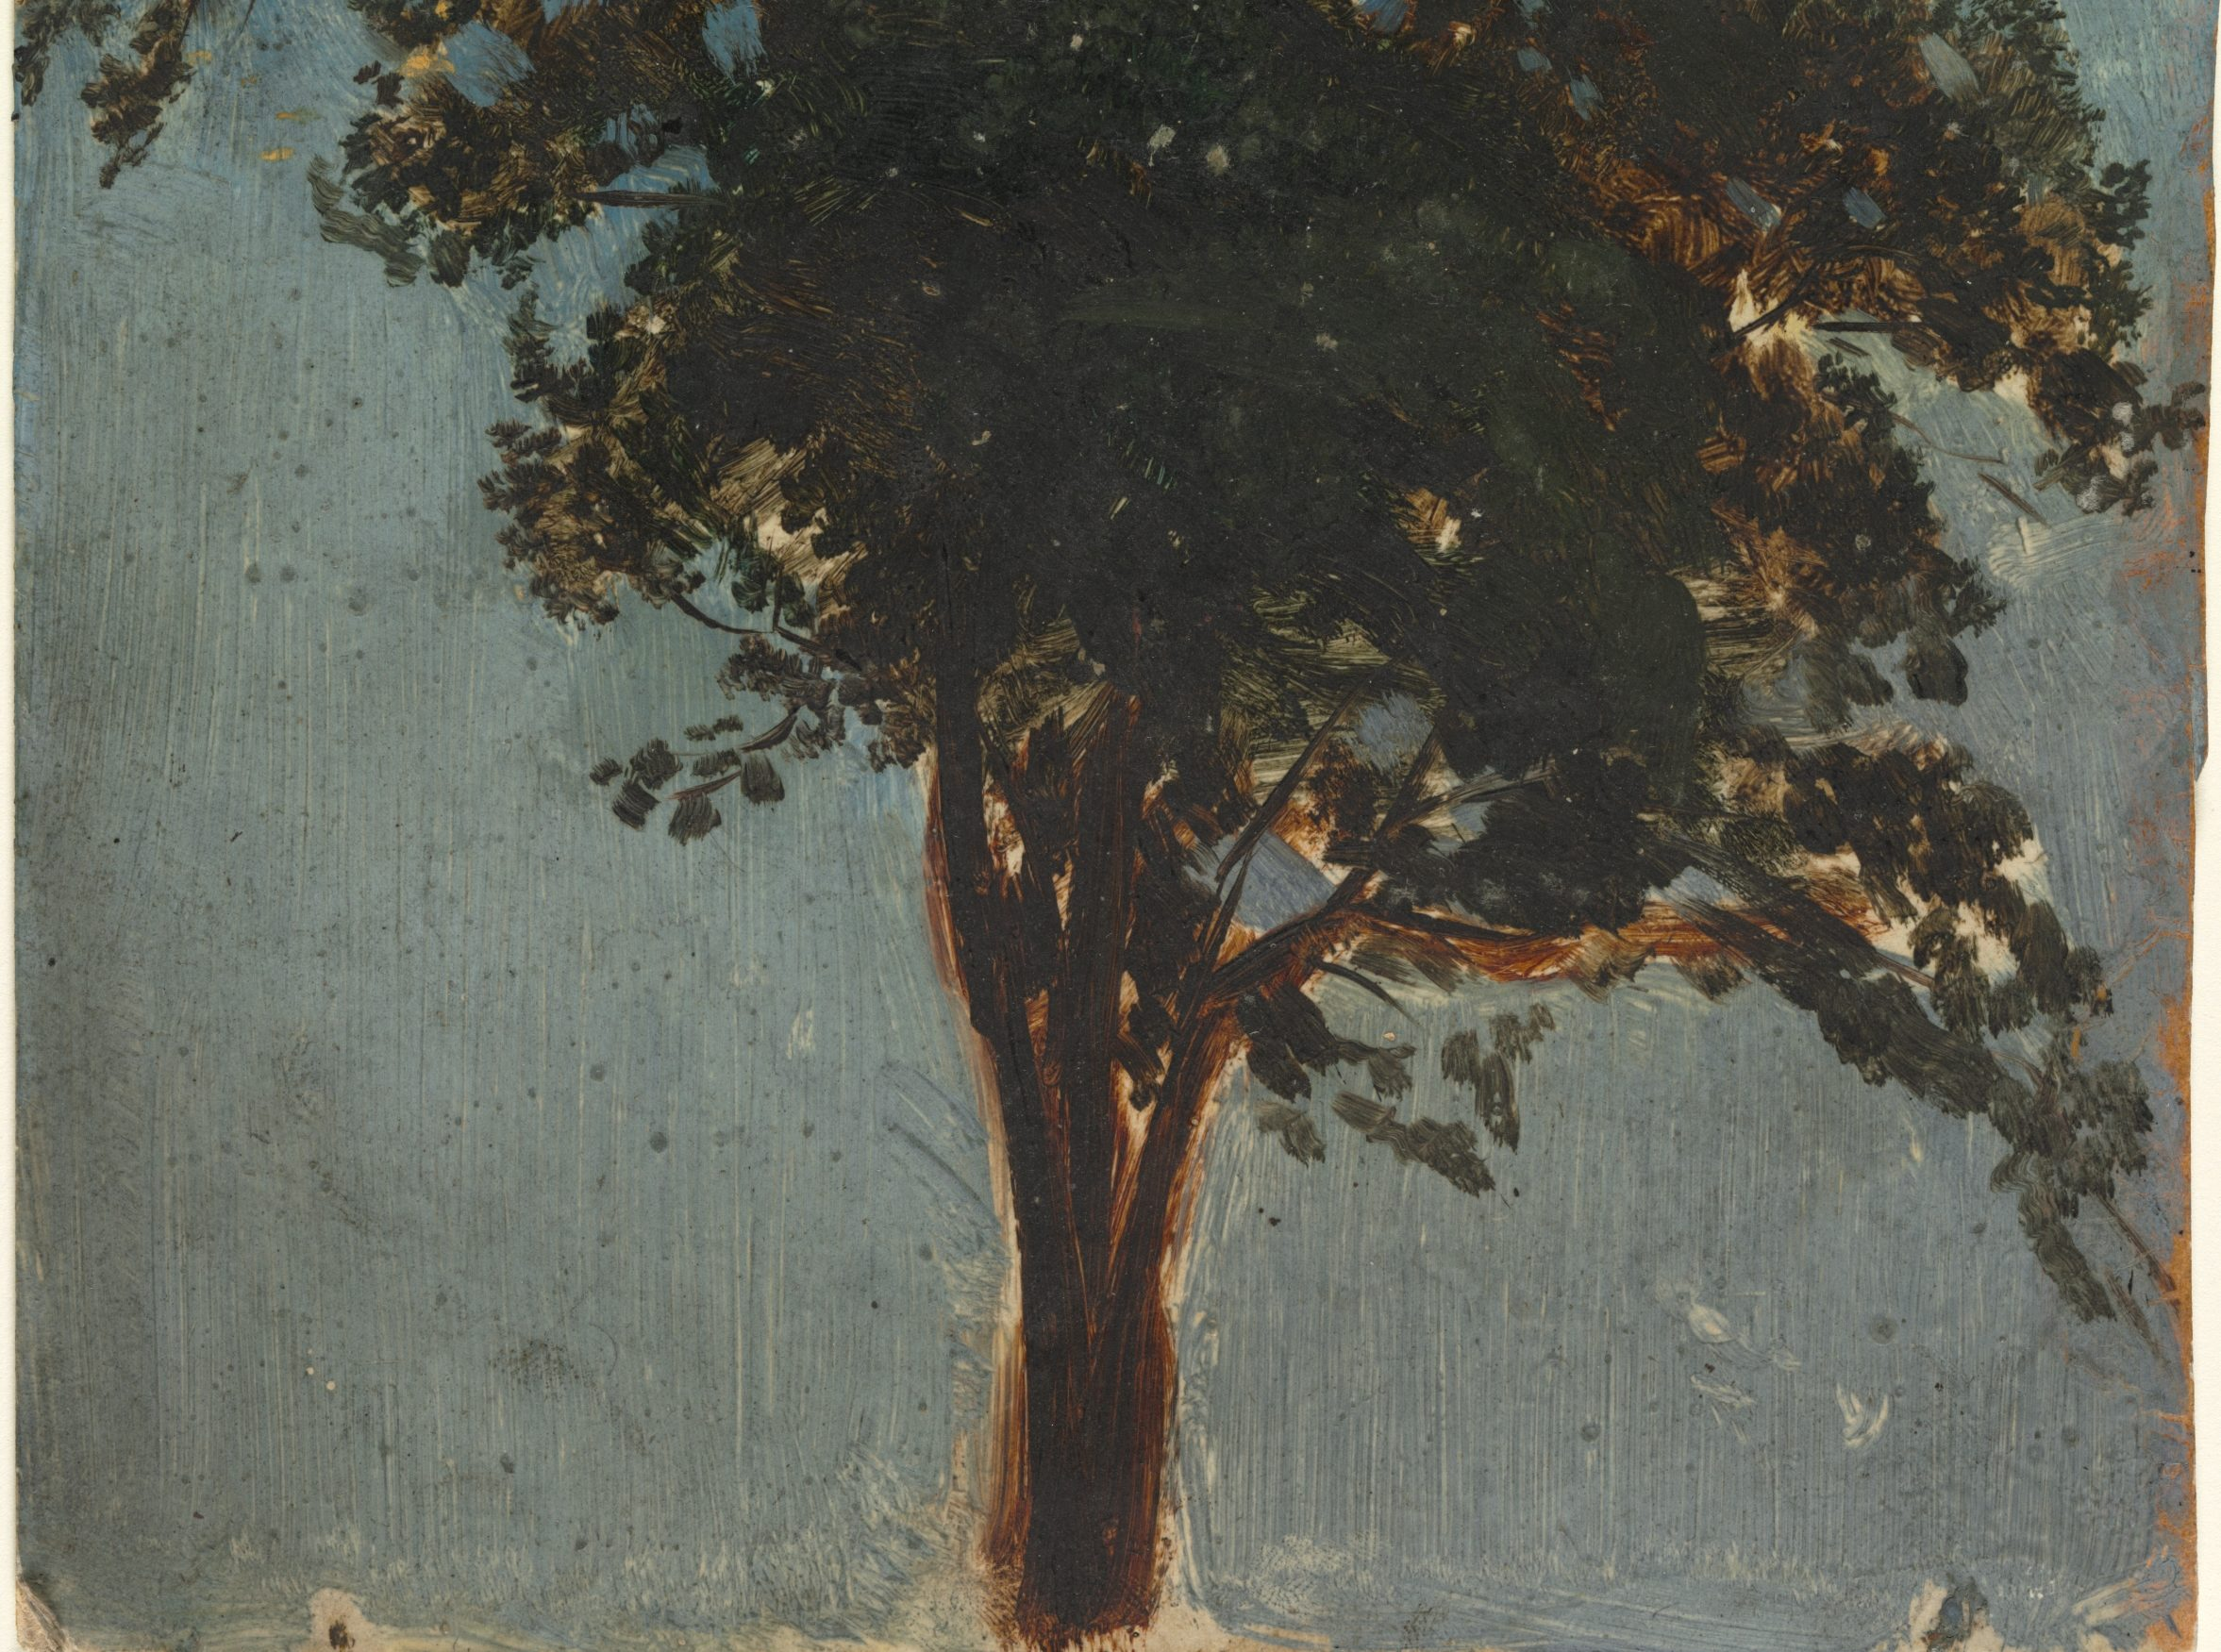 A painting of a tree against a faded blue background